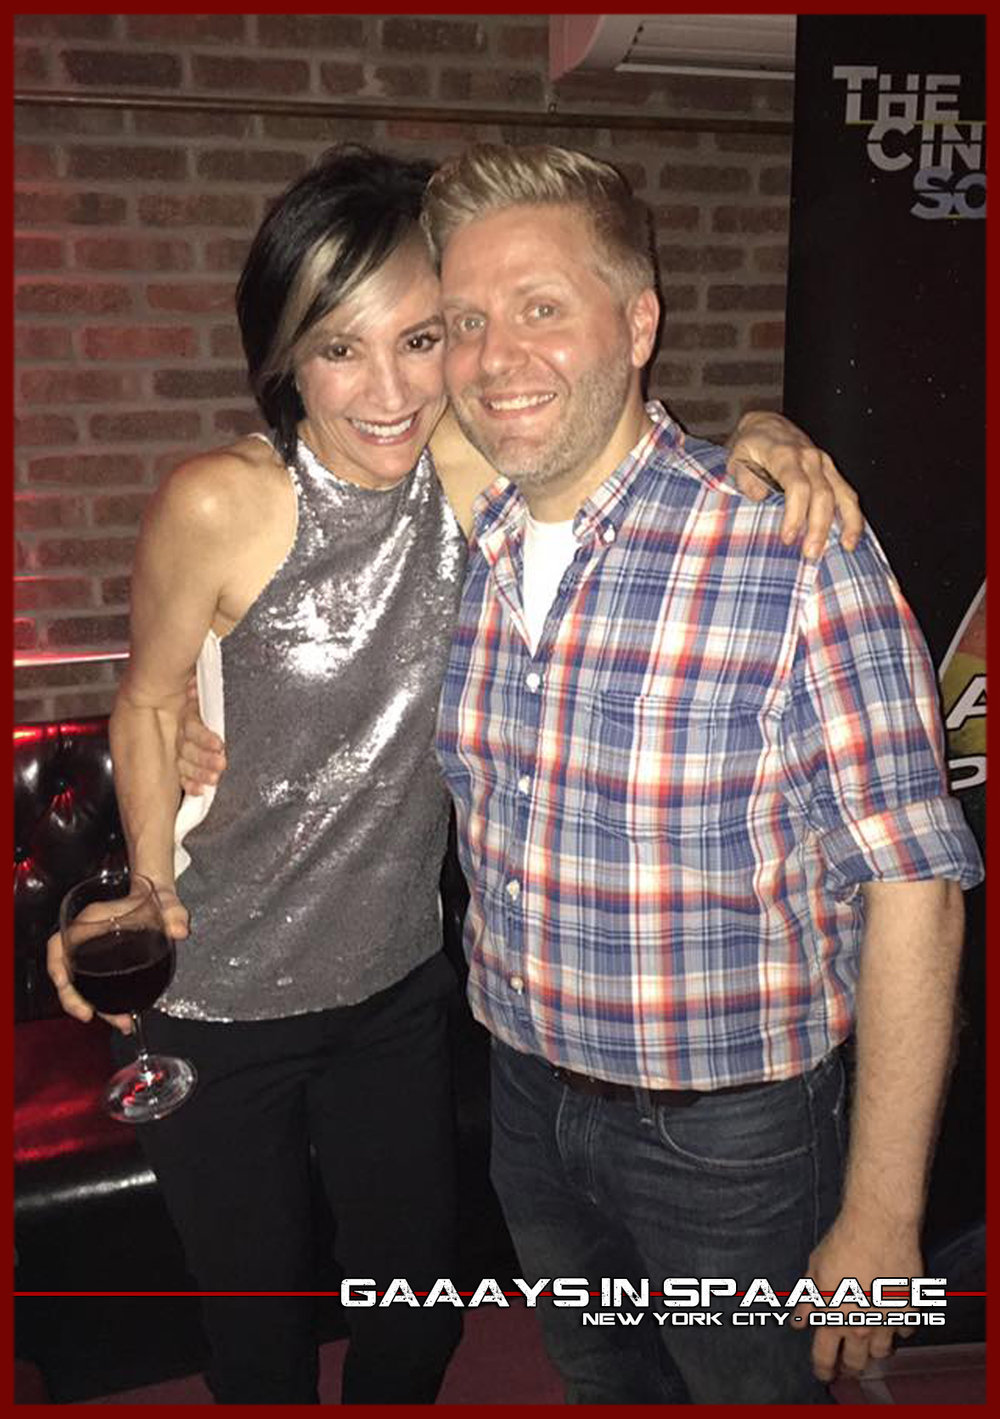 GaaaysInSpaaaceParty-NYC-9-2-2016-6-NanaVisitor-JamieFay-Non-Trek.jpg